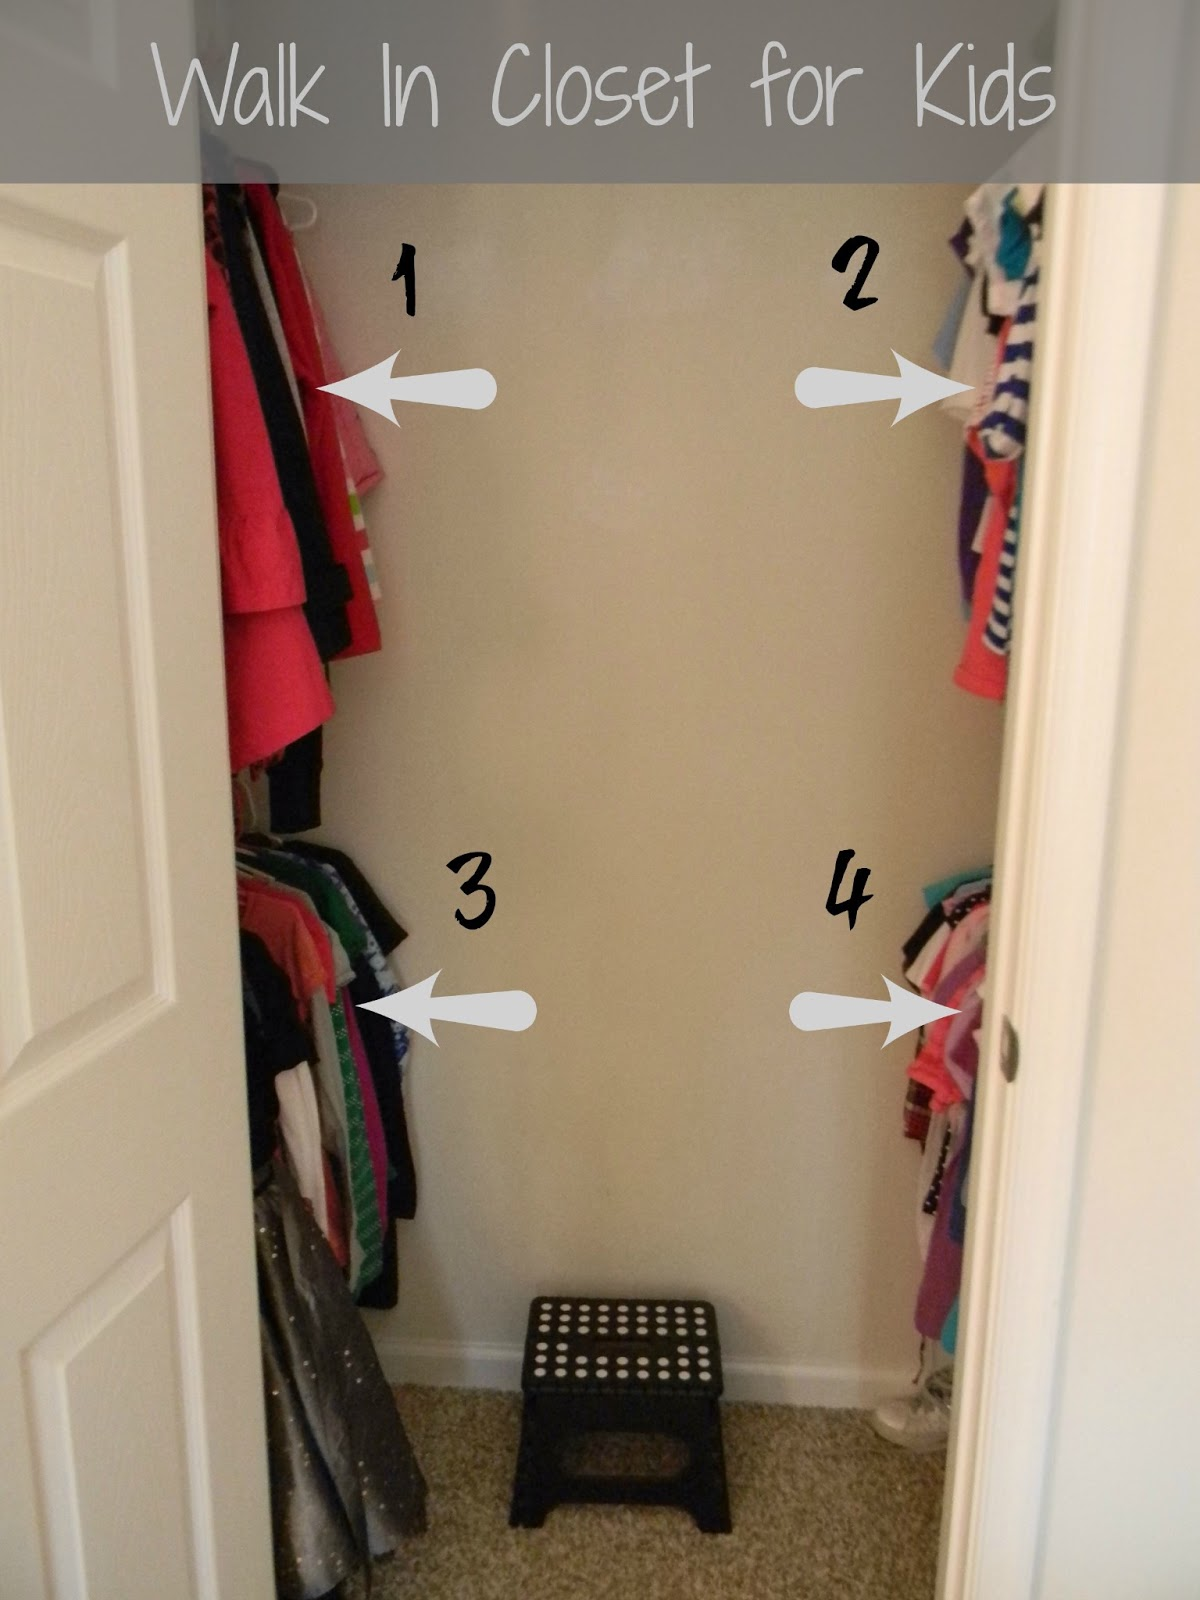 Seaside Interiors Improving Closet Space With New Shelving